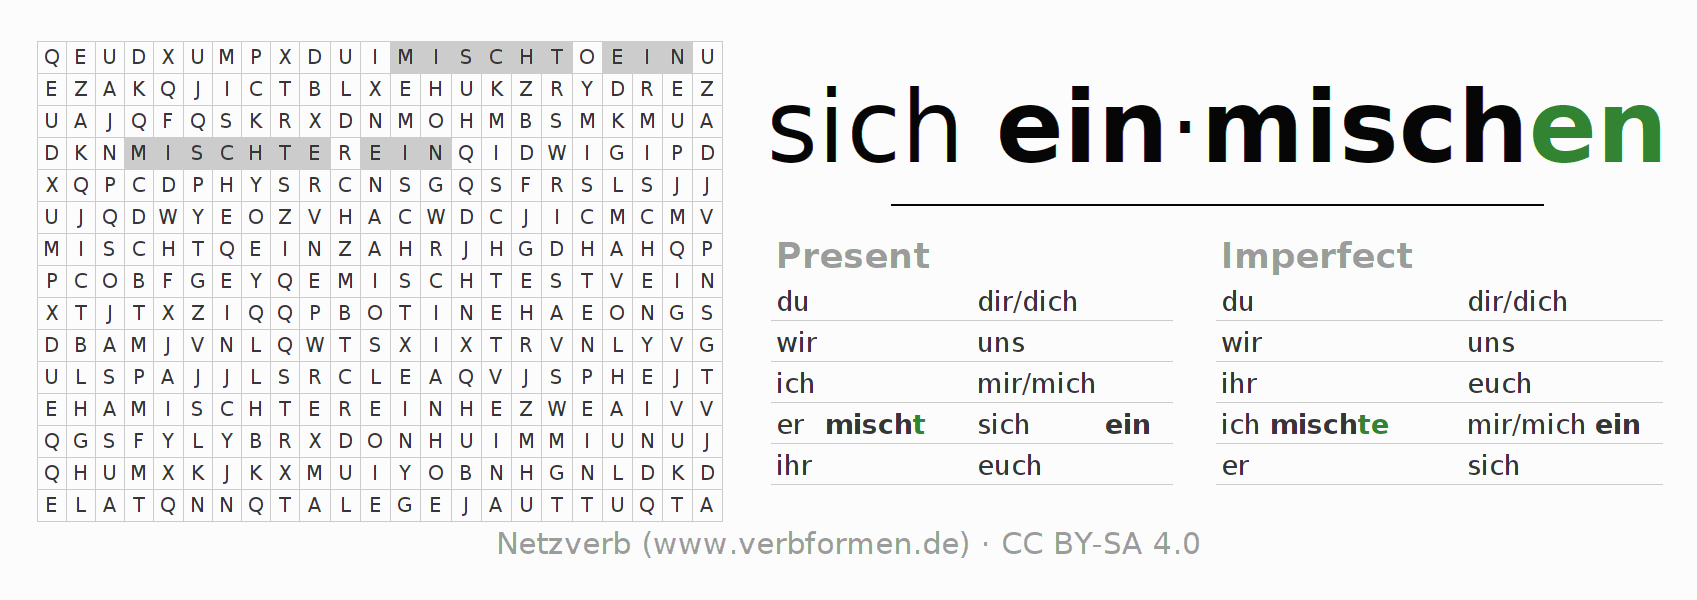 Word search puzzle for the conjugation of the verb sich einmischen